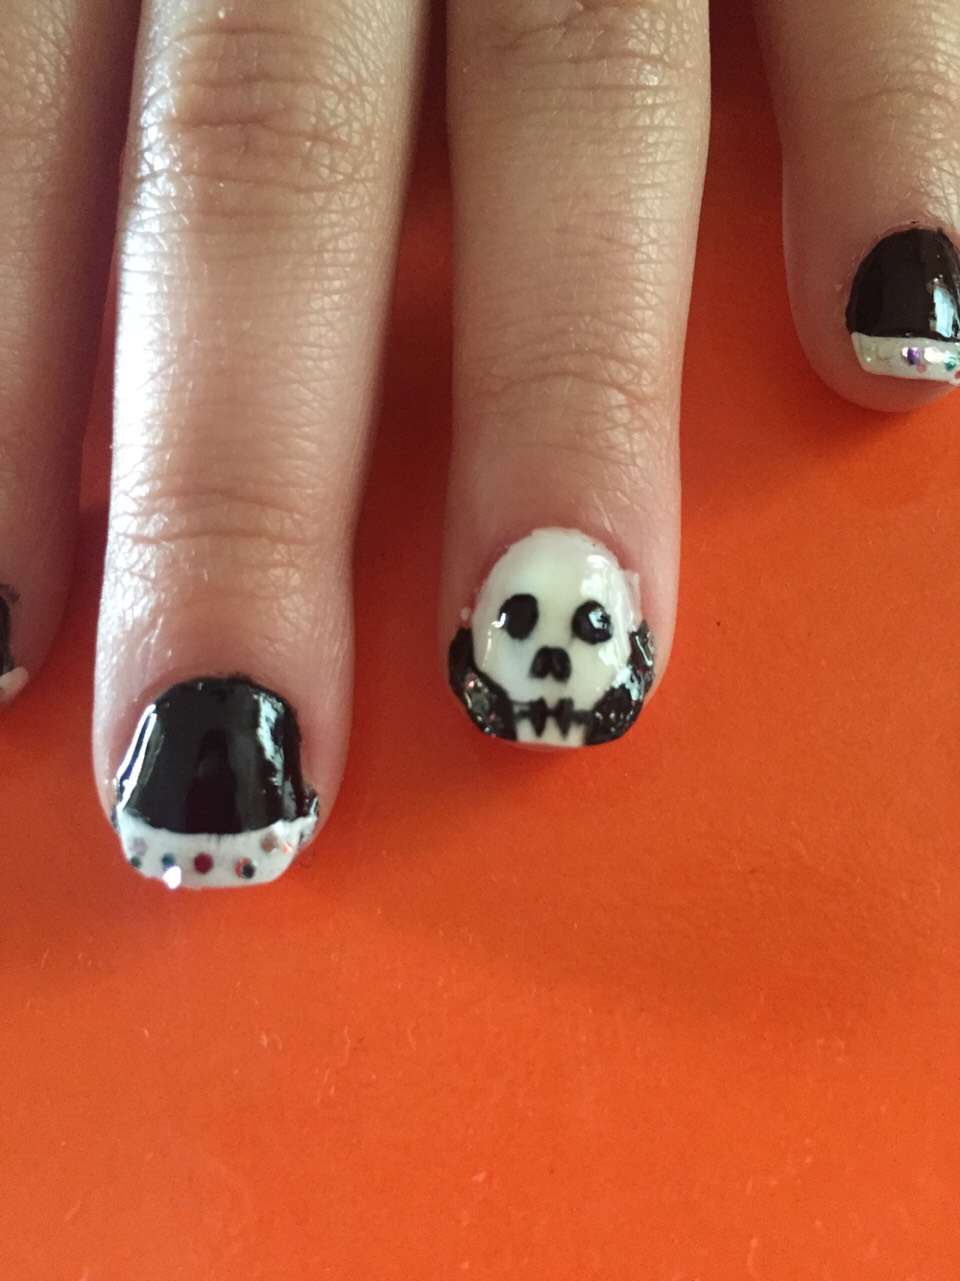 I did it on one of my friend's nails for Halloween, and she loves how it came out! I hope my tips help you too! 😁